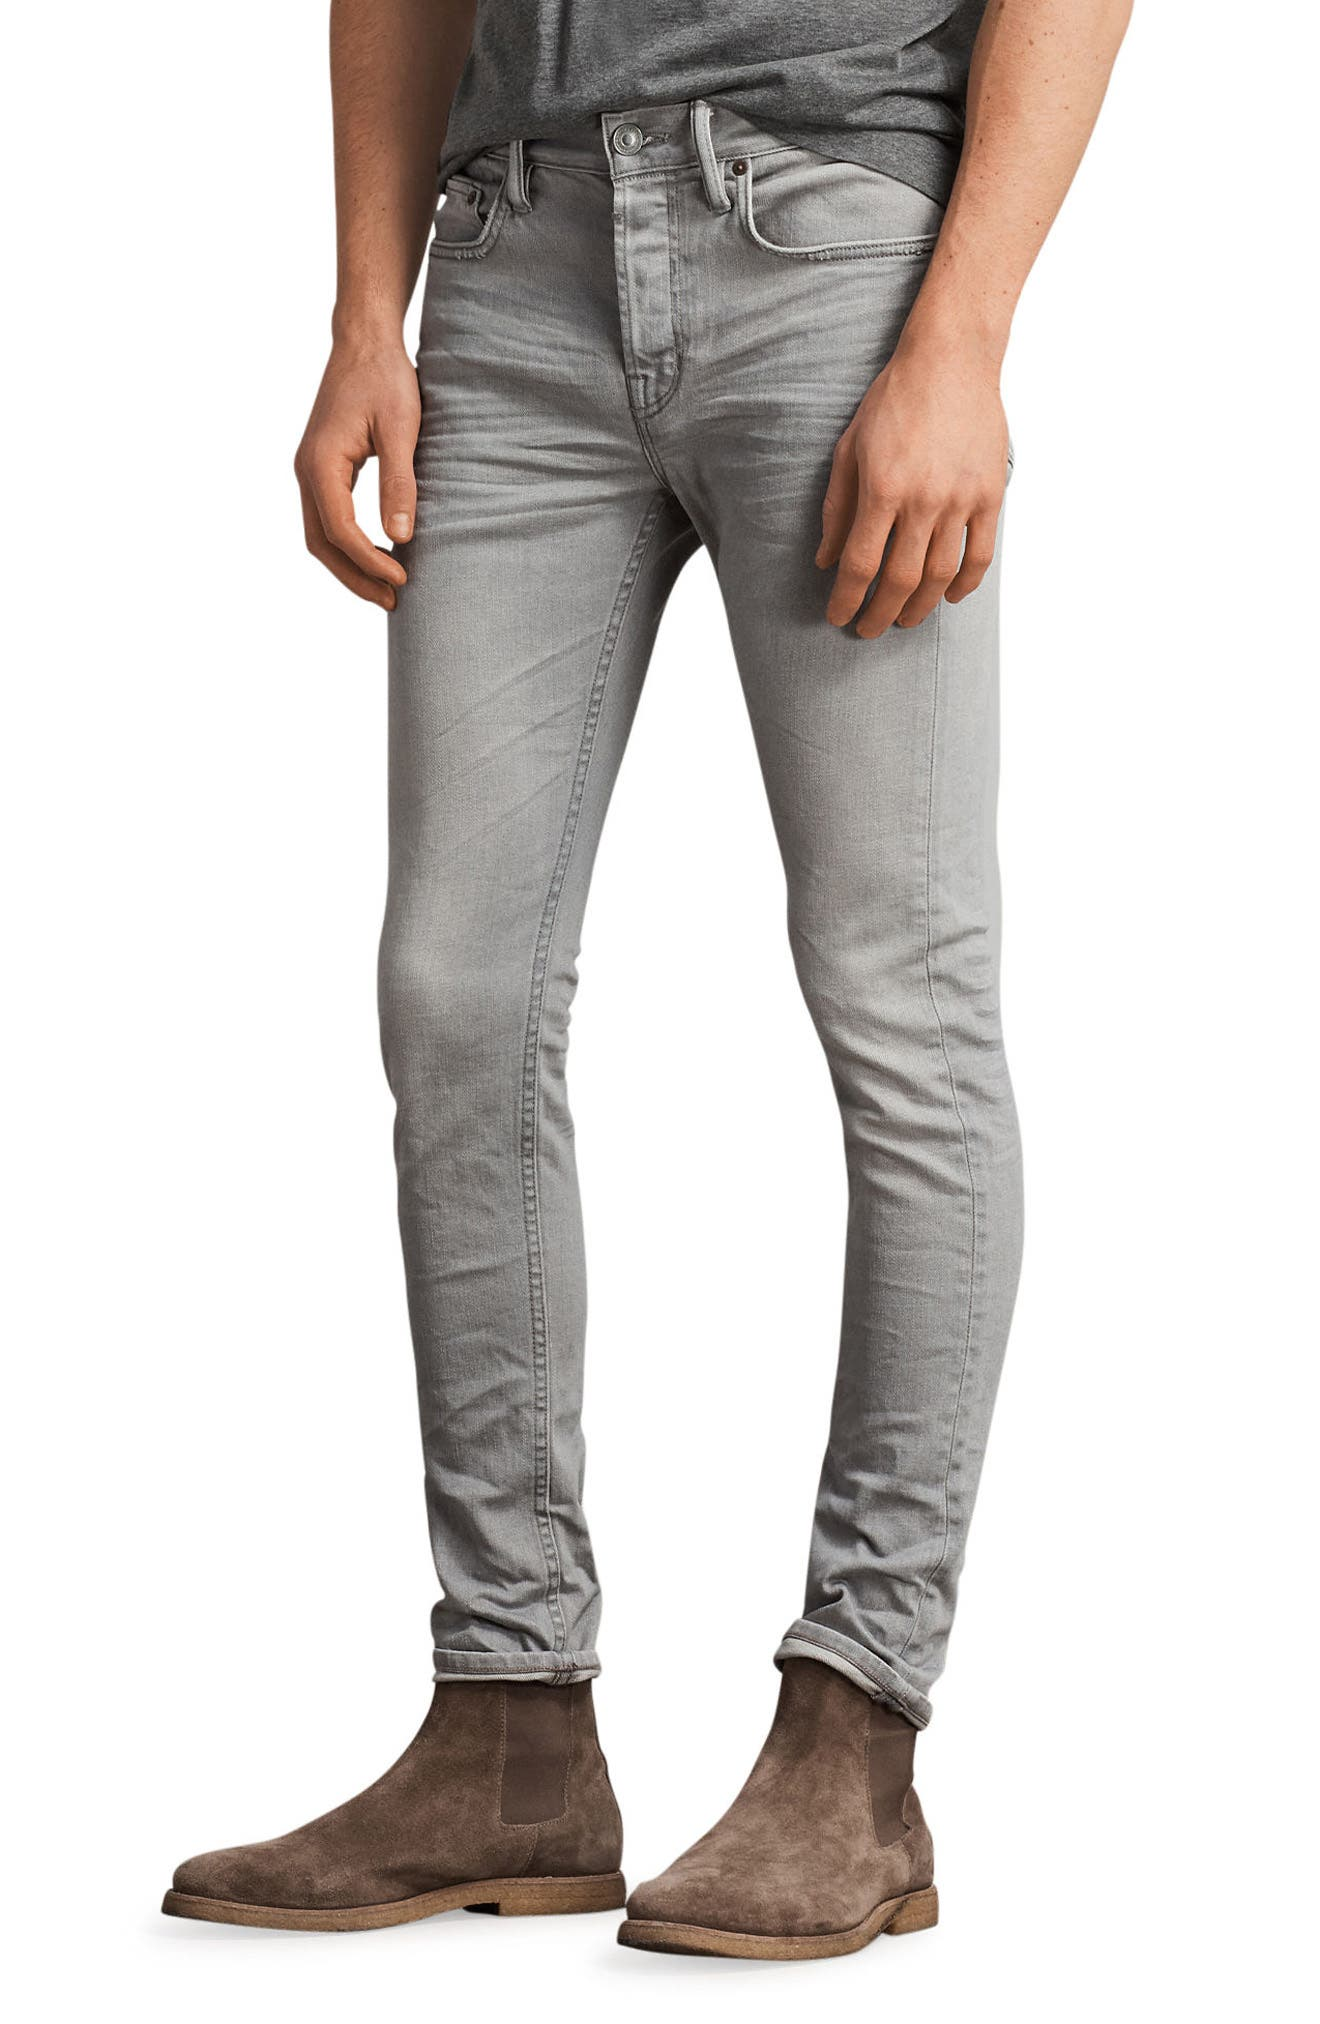 Ghoul Skinny Fit Jeans,                             Main thumbnail 1, color,                             Grey